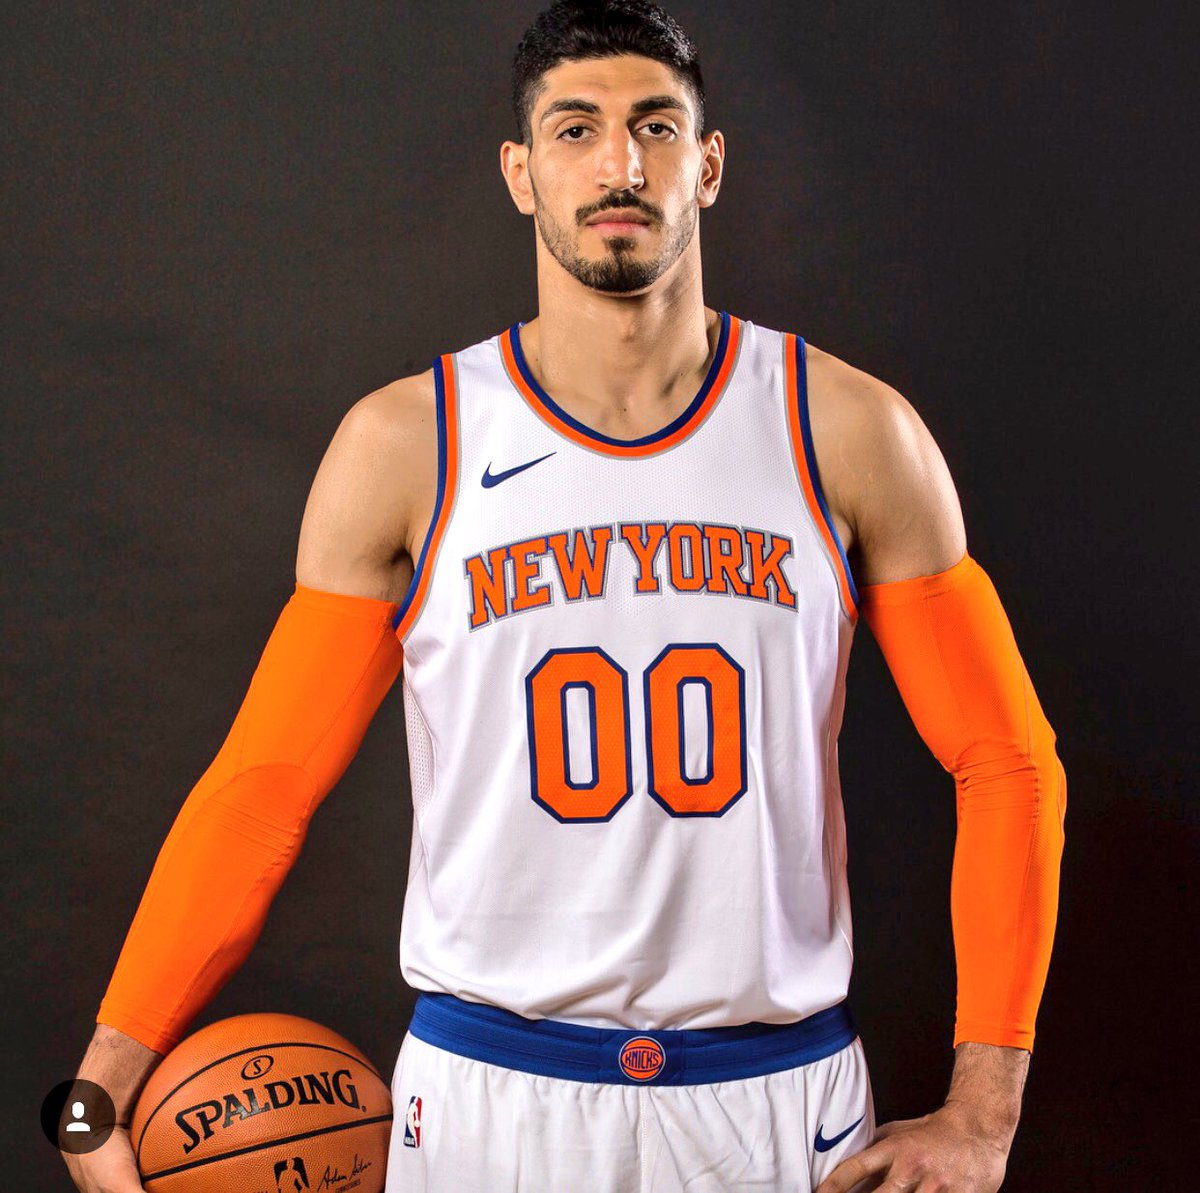 info for 80a1a 4f32f Enes Kanter on Twitter: